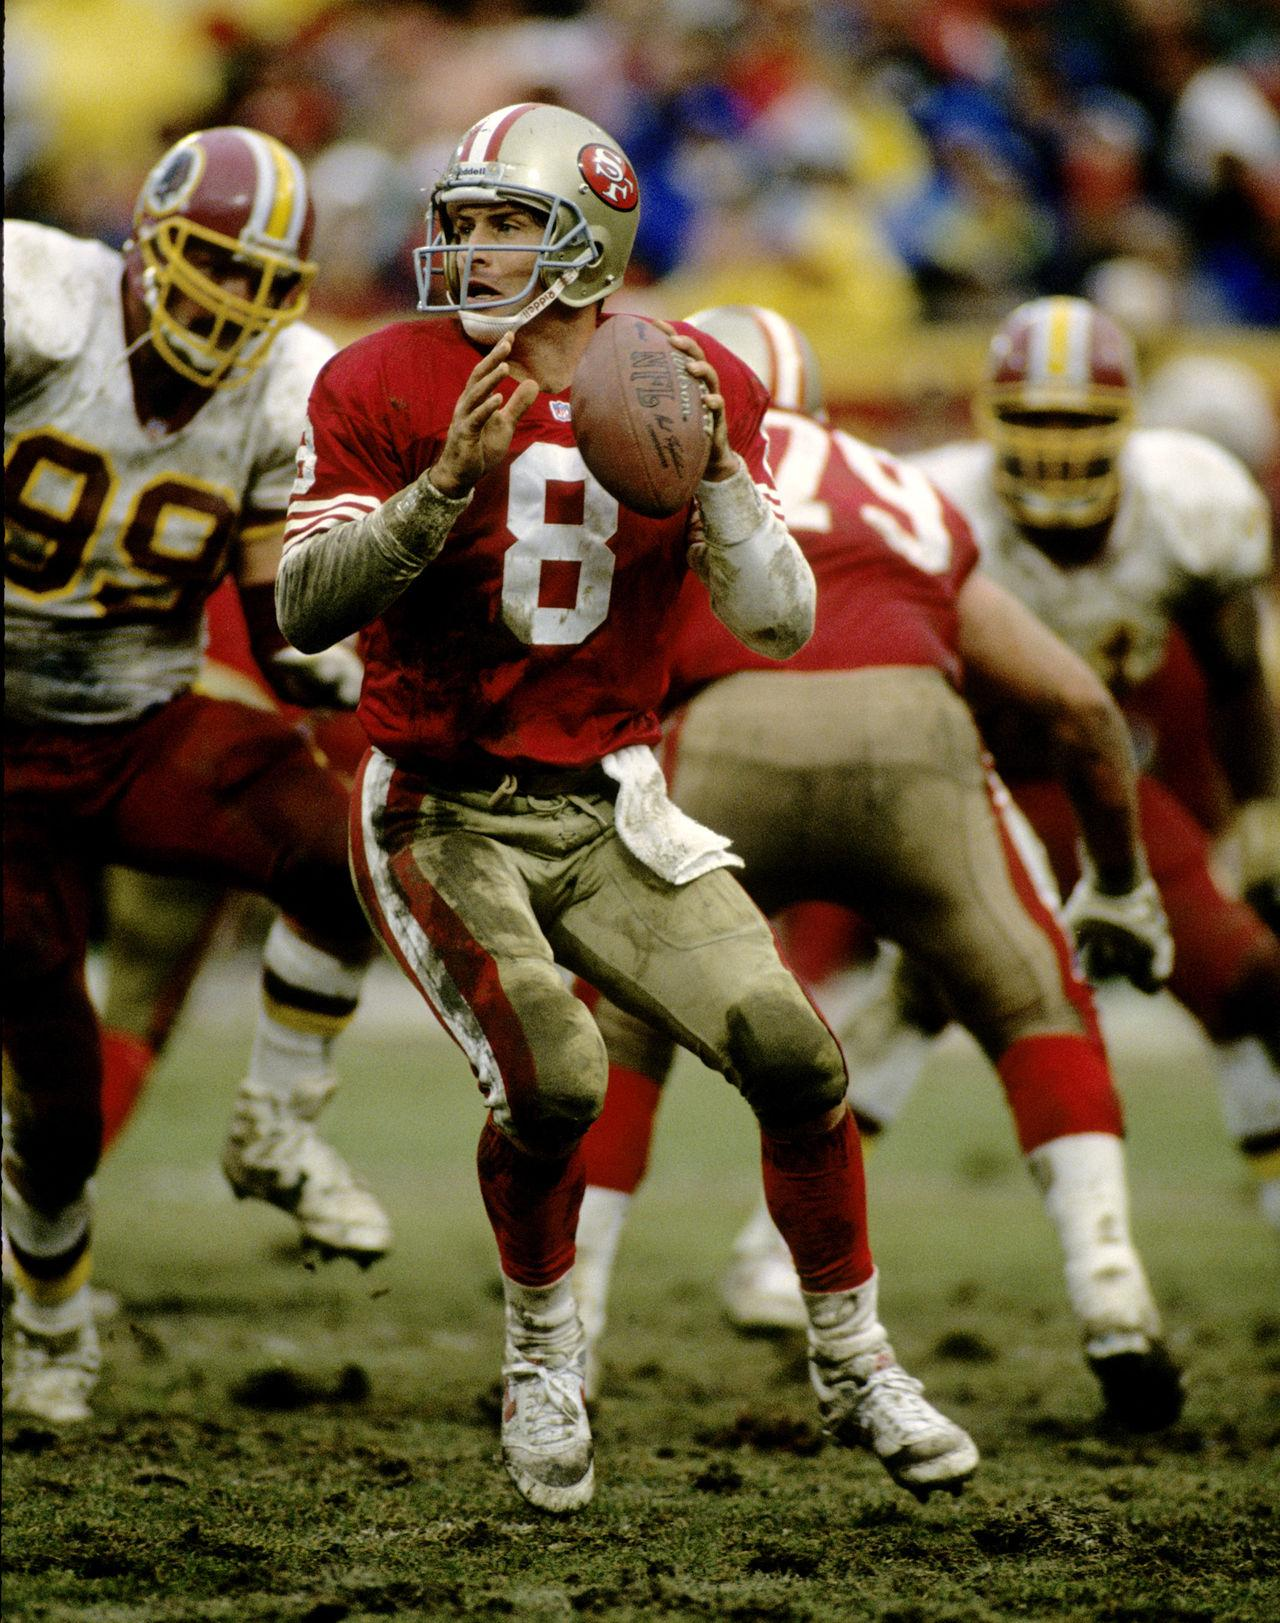 Happy BDay to lifetime member and Hall of Famer Steve Young!